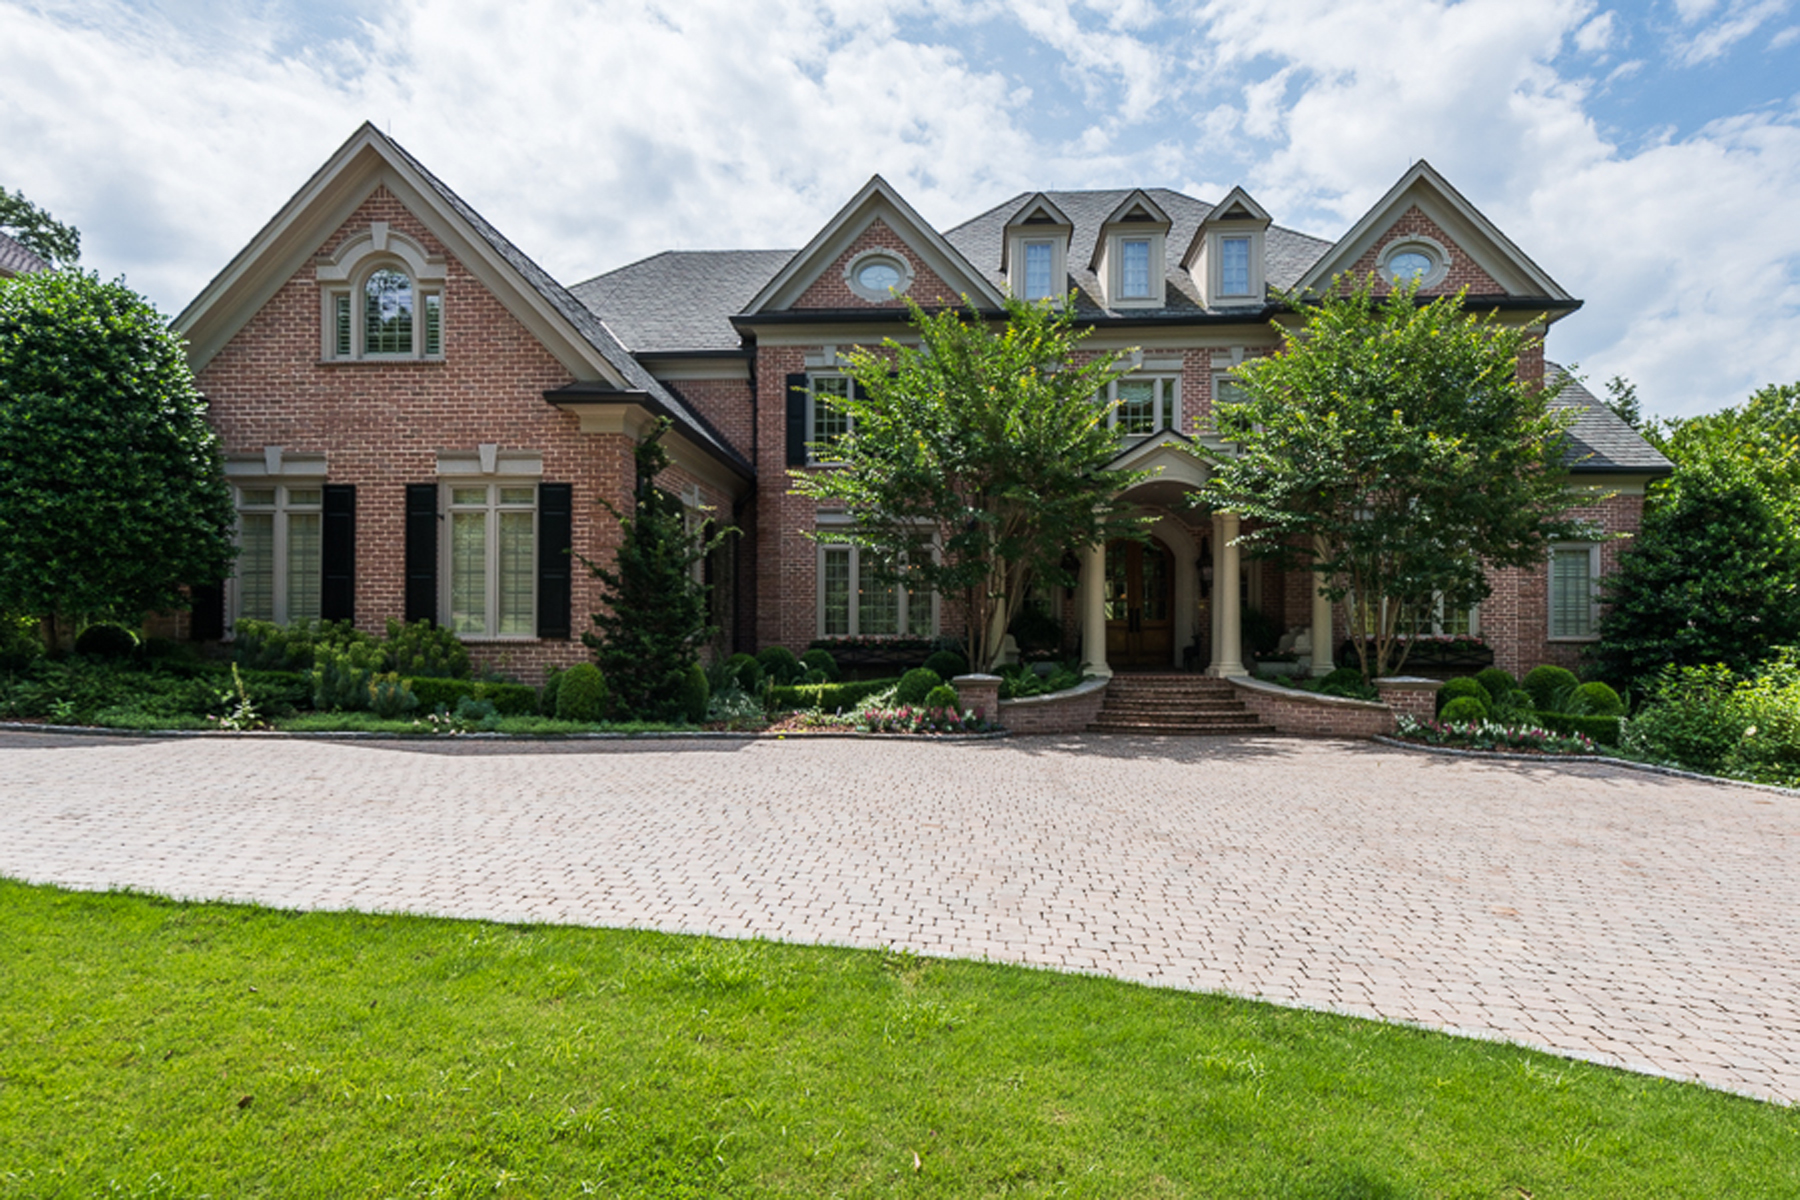 Moradia para Venda às A Masterpiece In Johns Creek Most Prestigious Gated Golf Community 490 Covington Cove Alpharetta, Geórgia 30022 Estados Unidos